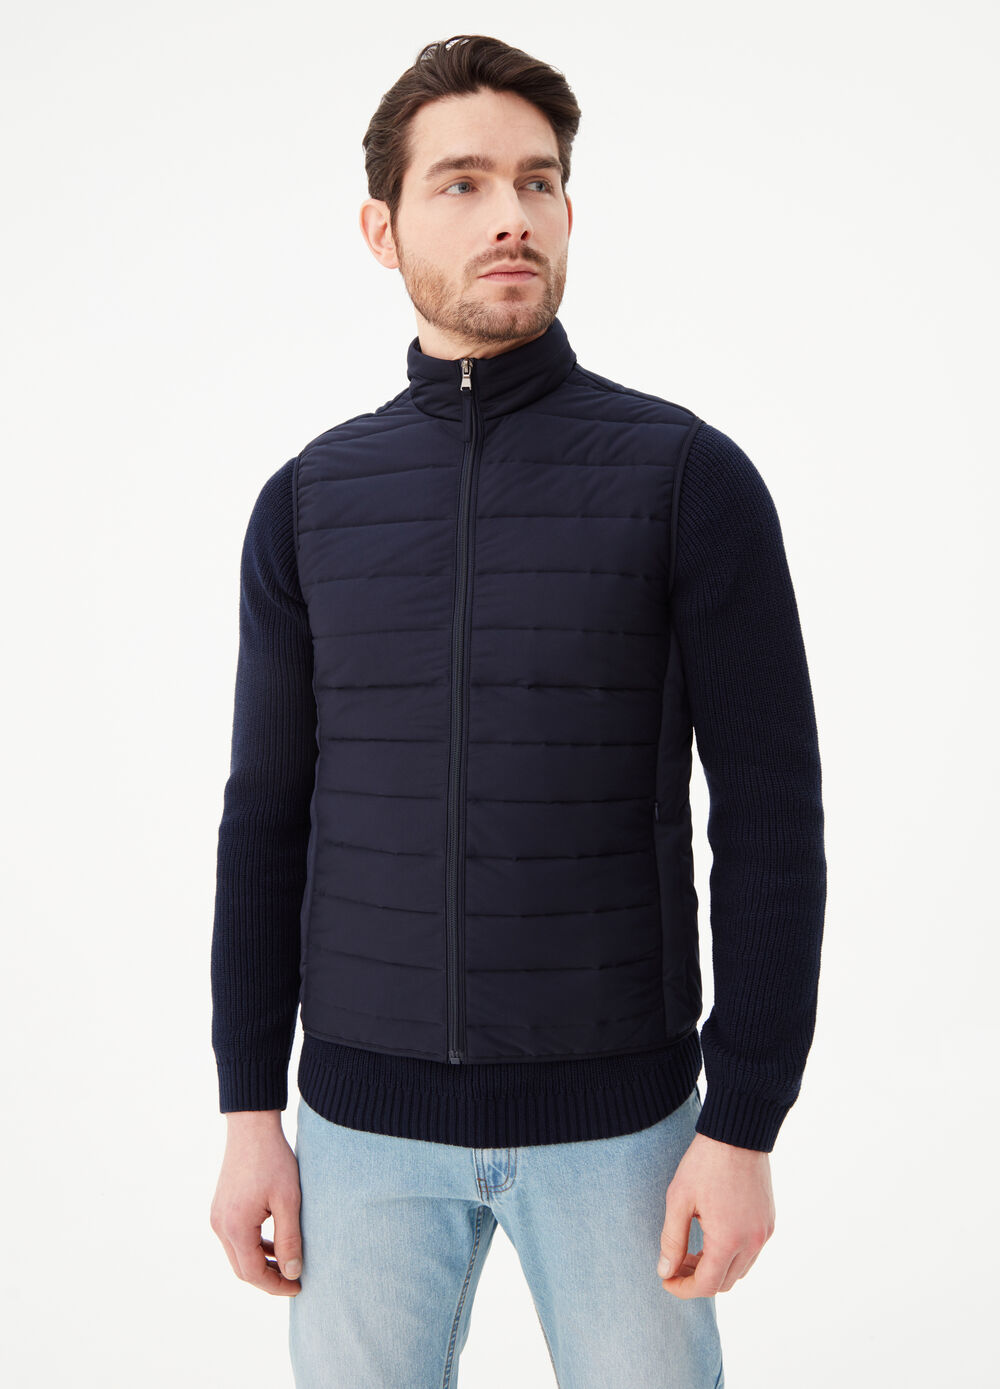 Padded gilet with pockets and high collar